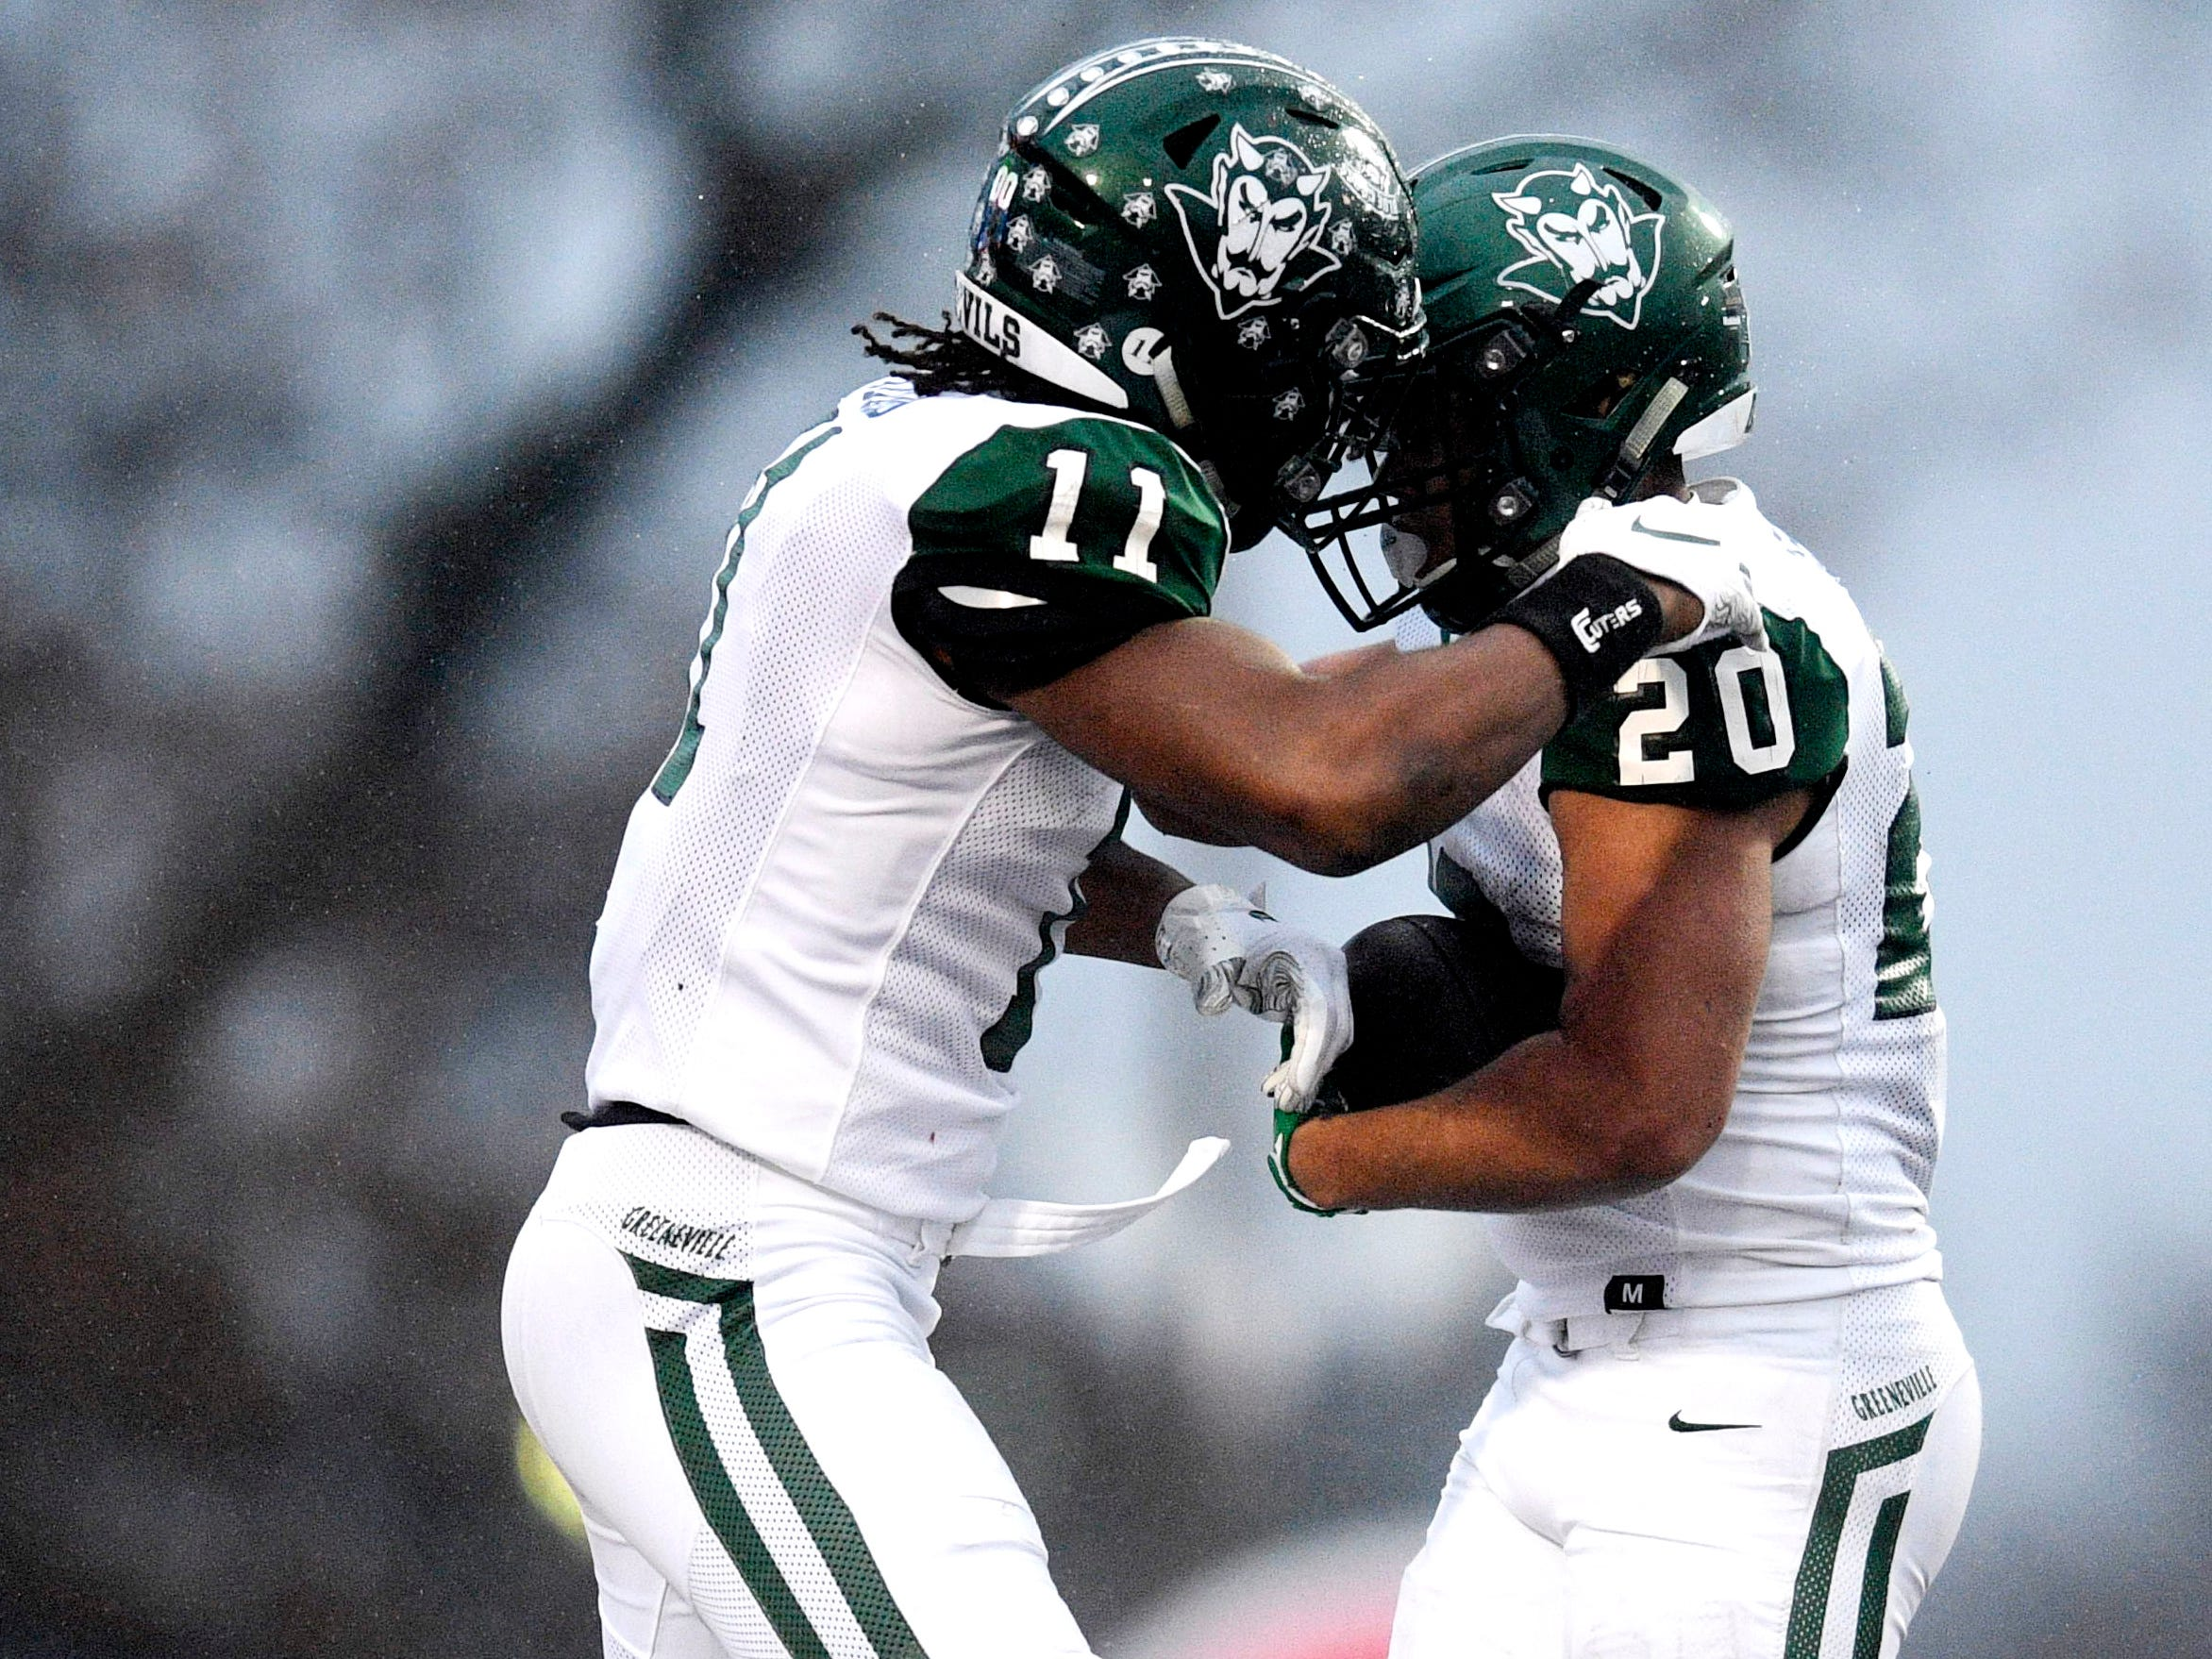 Greeneville's Jaevon Gillespie (20) celebrates his touhdown with Greeneville's Dorien Goddard (11) in the first half of the Class 4A BlueCross Bowl state championship at Tennessee Tech's Tucker Stadium in Cookeville, Tenn., on Thursday, Nov. 29, 2018.